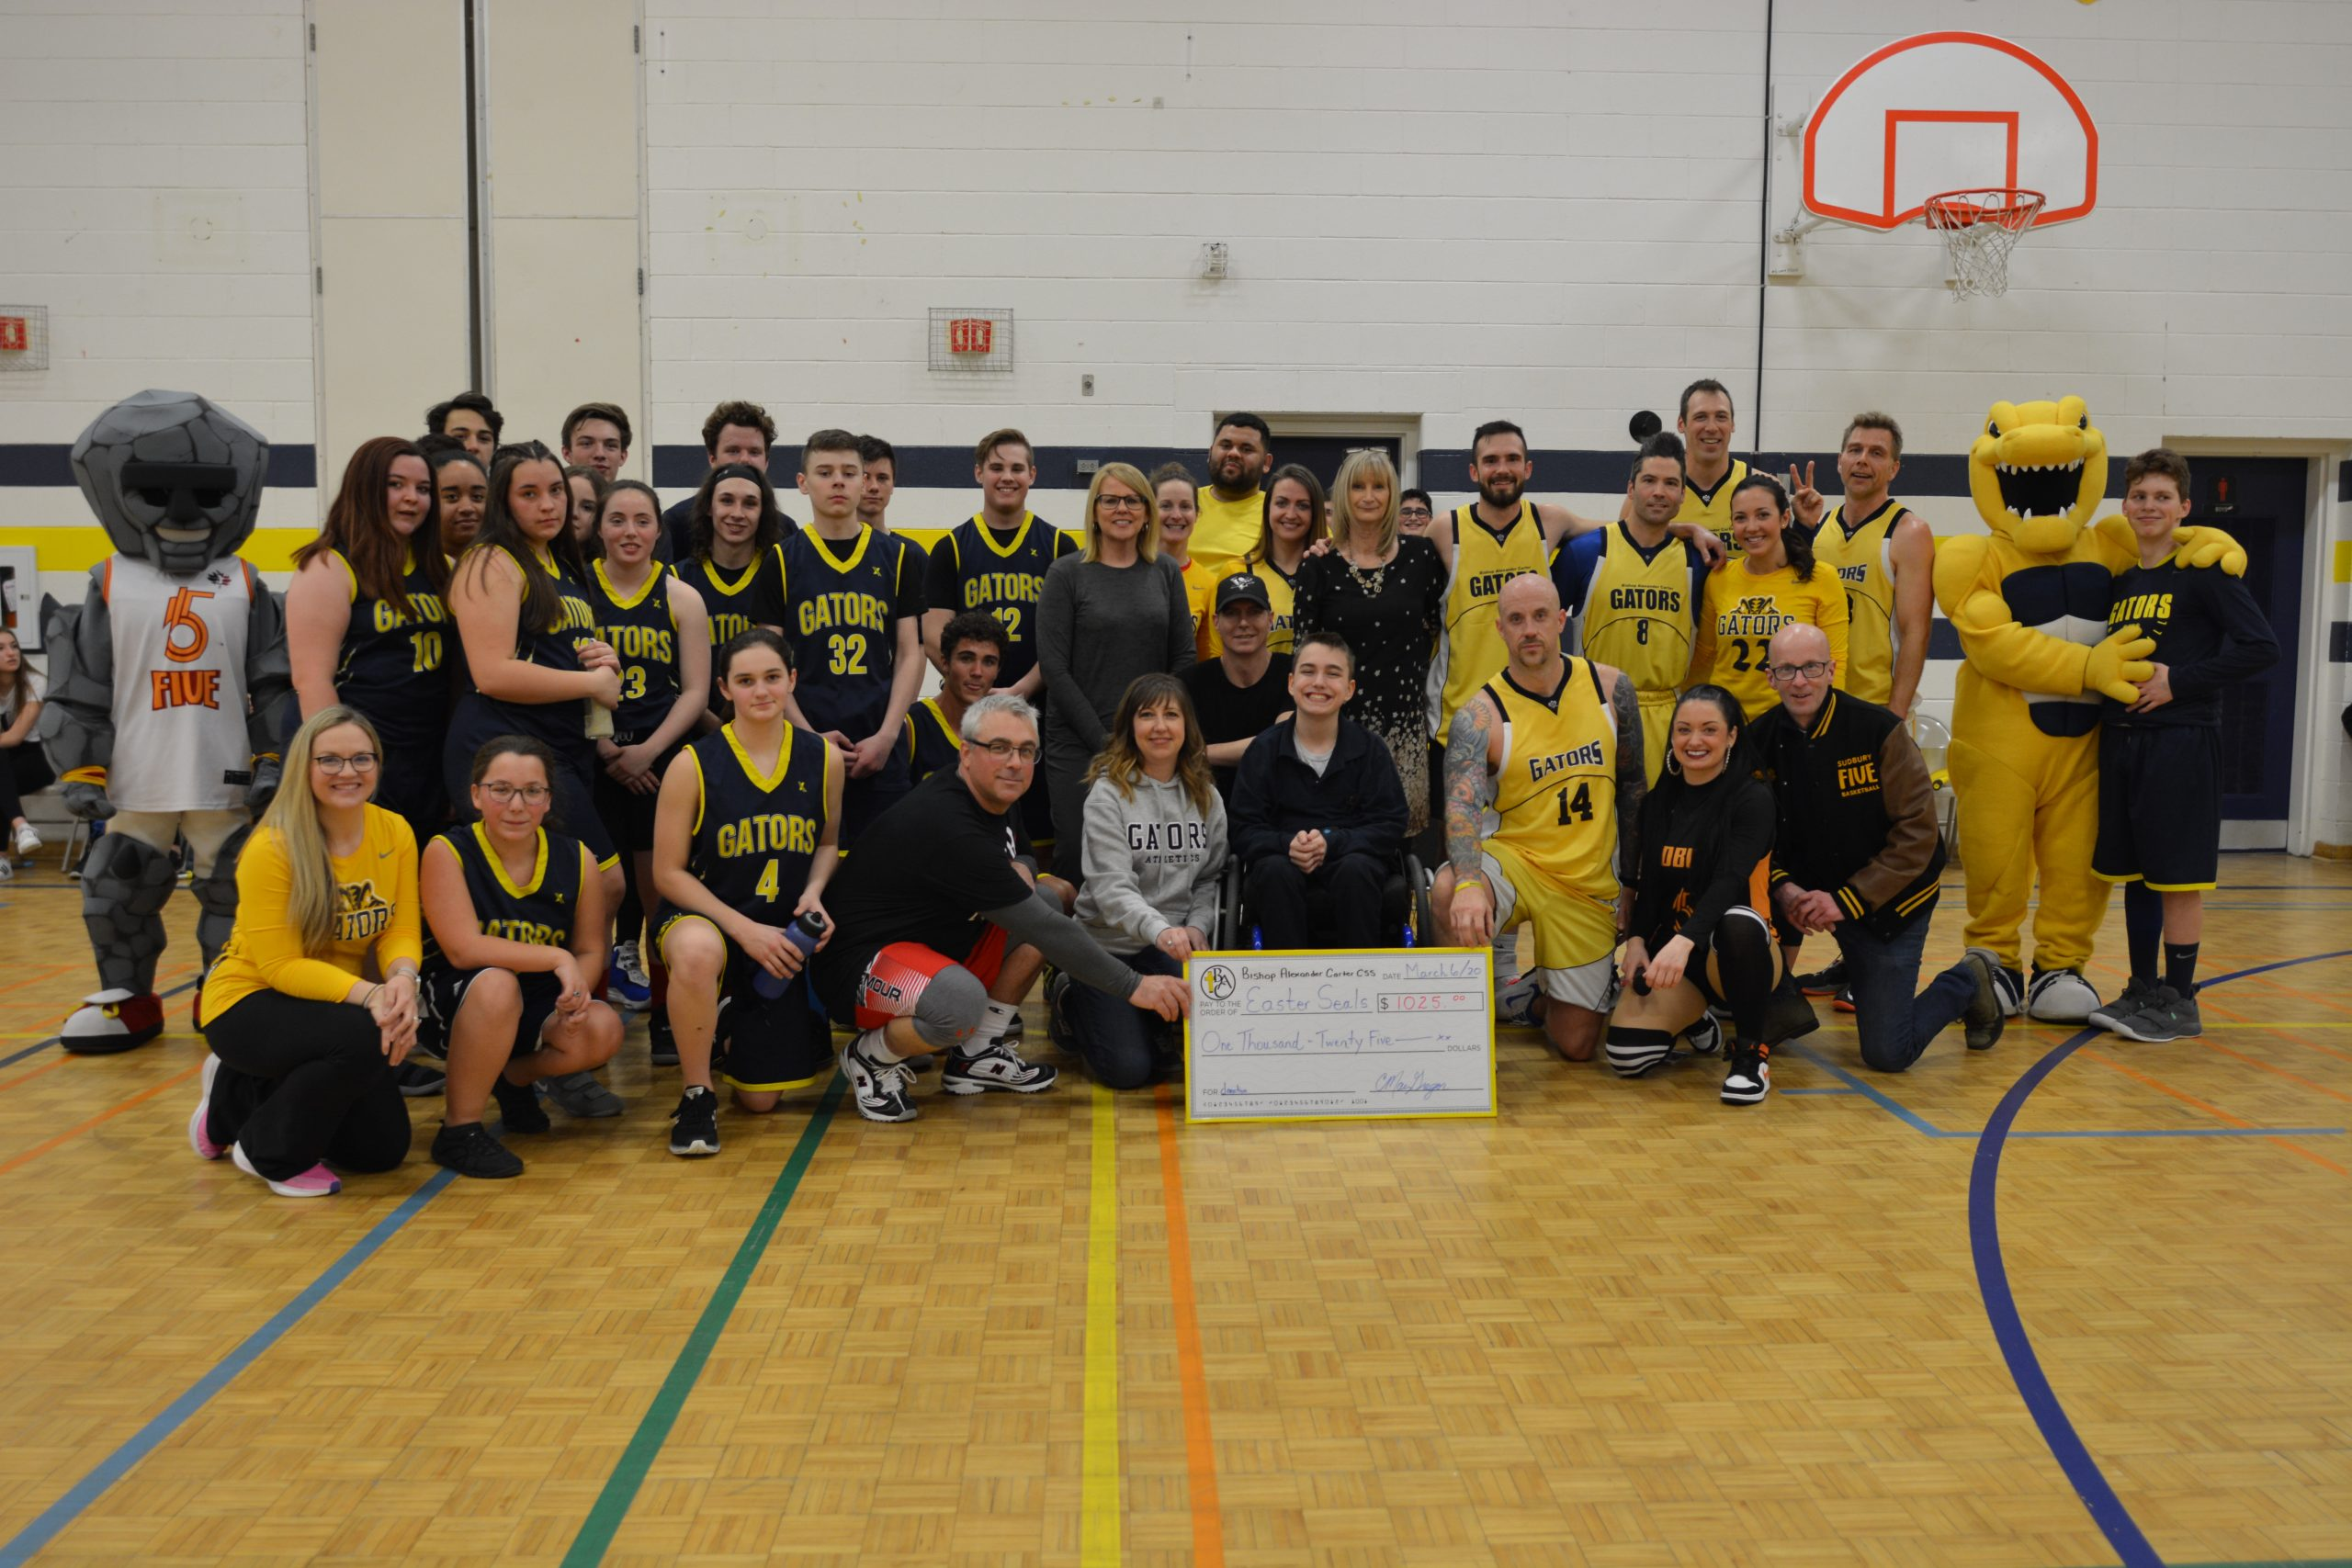 Group stands together with giant cheque